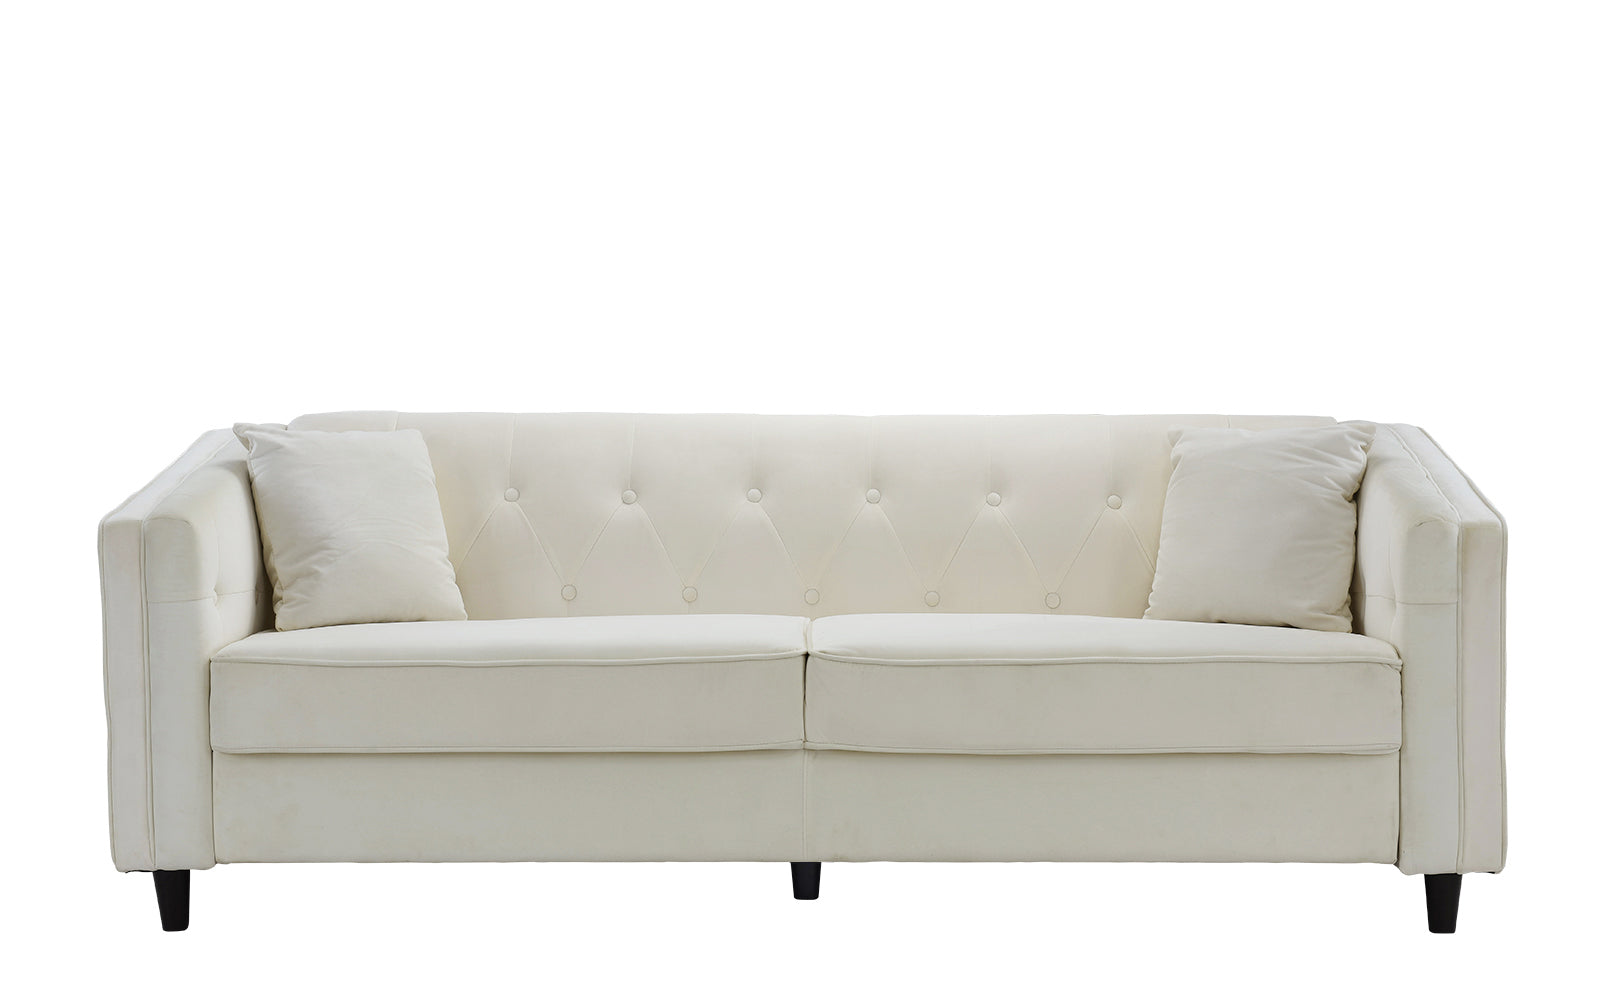 Adelia victorian velvet sofa with tufted button accents for Button tufted chaise settee velvet